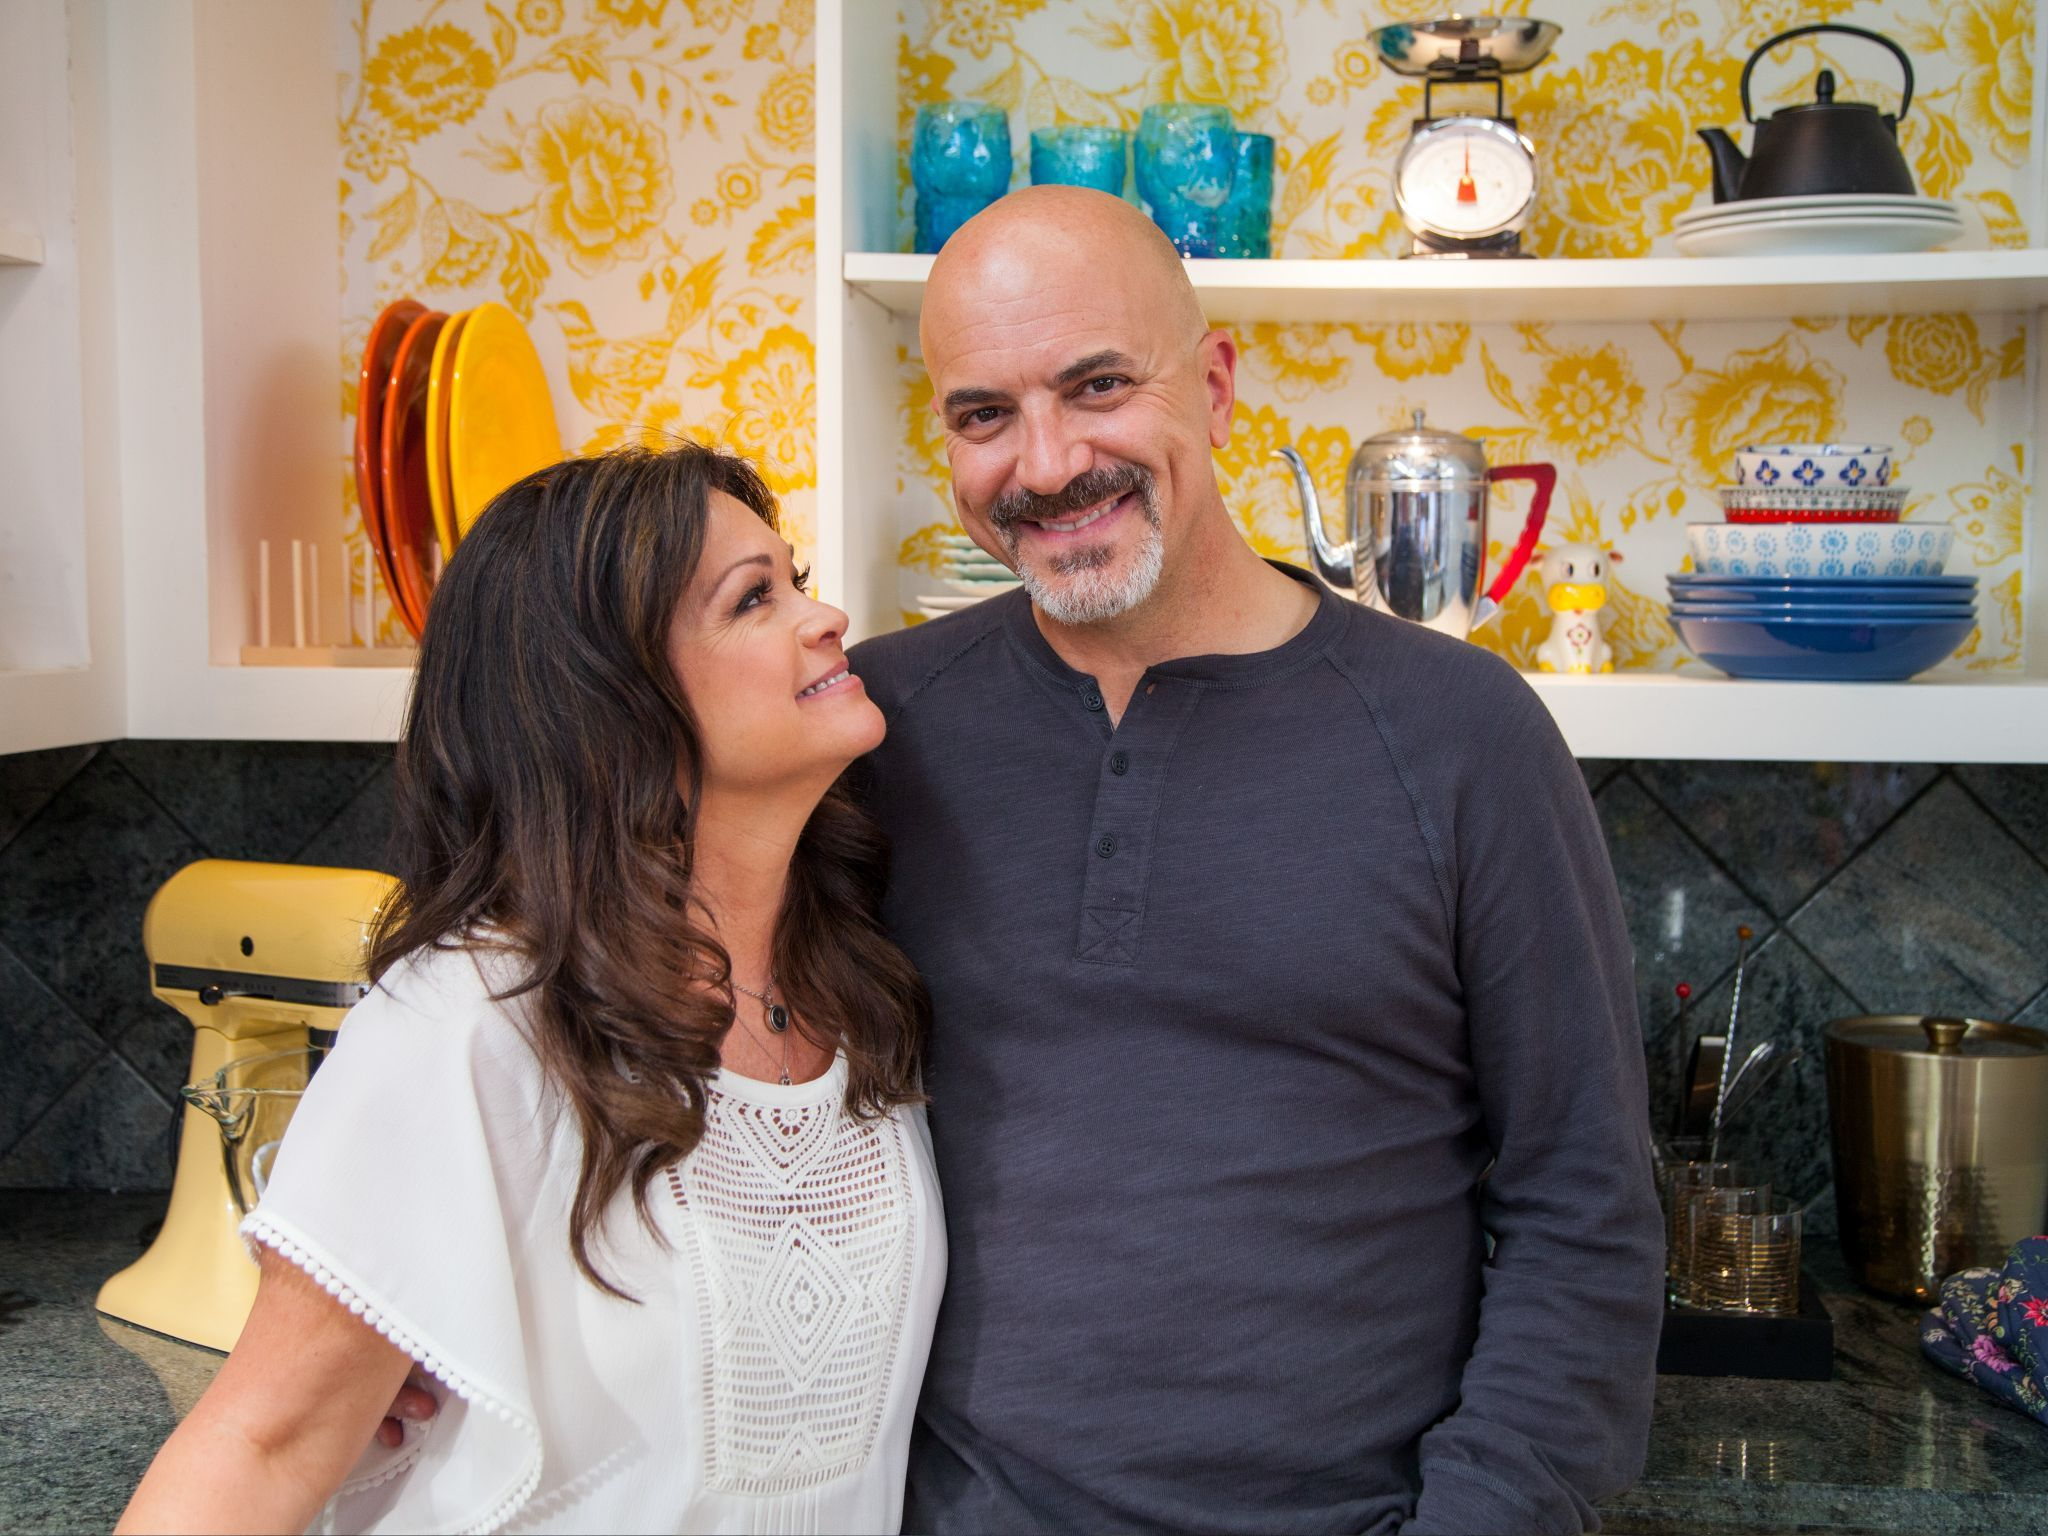 Best Friends Valerie And Her Husband Tom Love Hanging Out Together With A Home Cooked Italian Meal Va Valerie Bertinelli Home Cooking Food Network Recipes